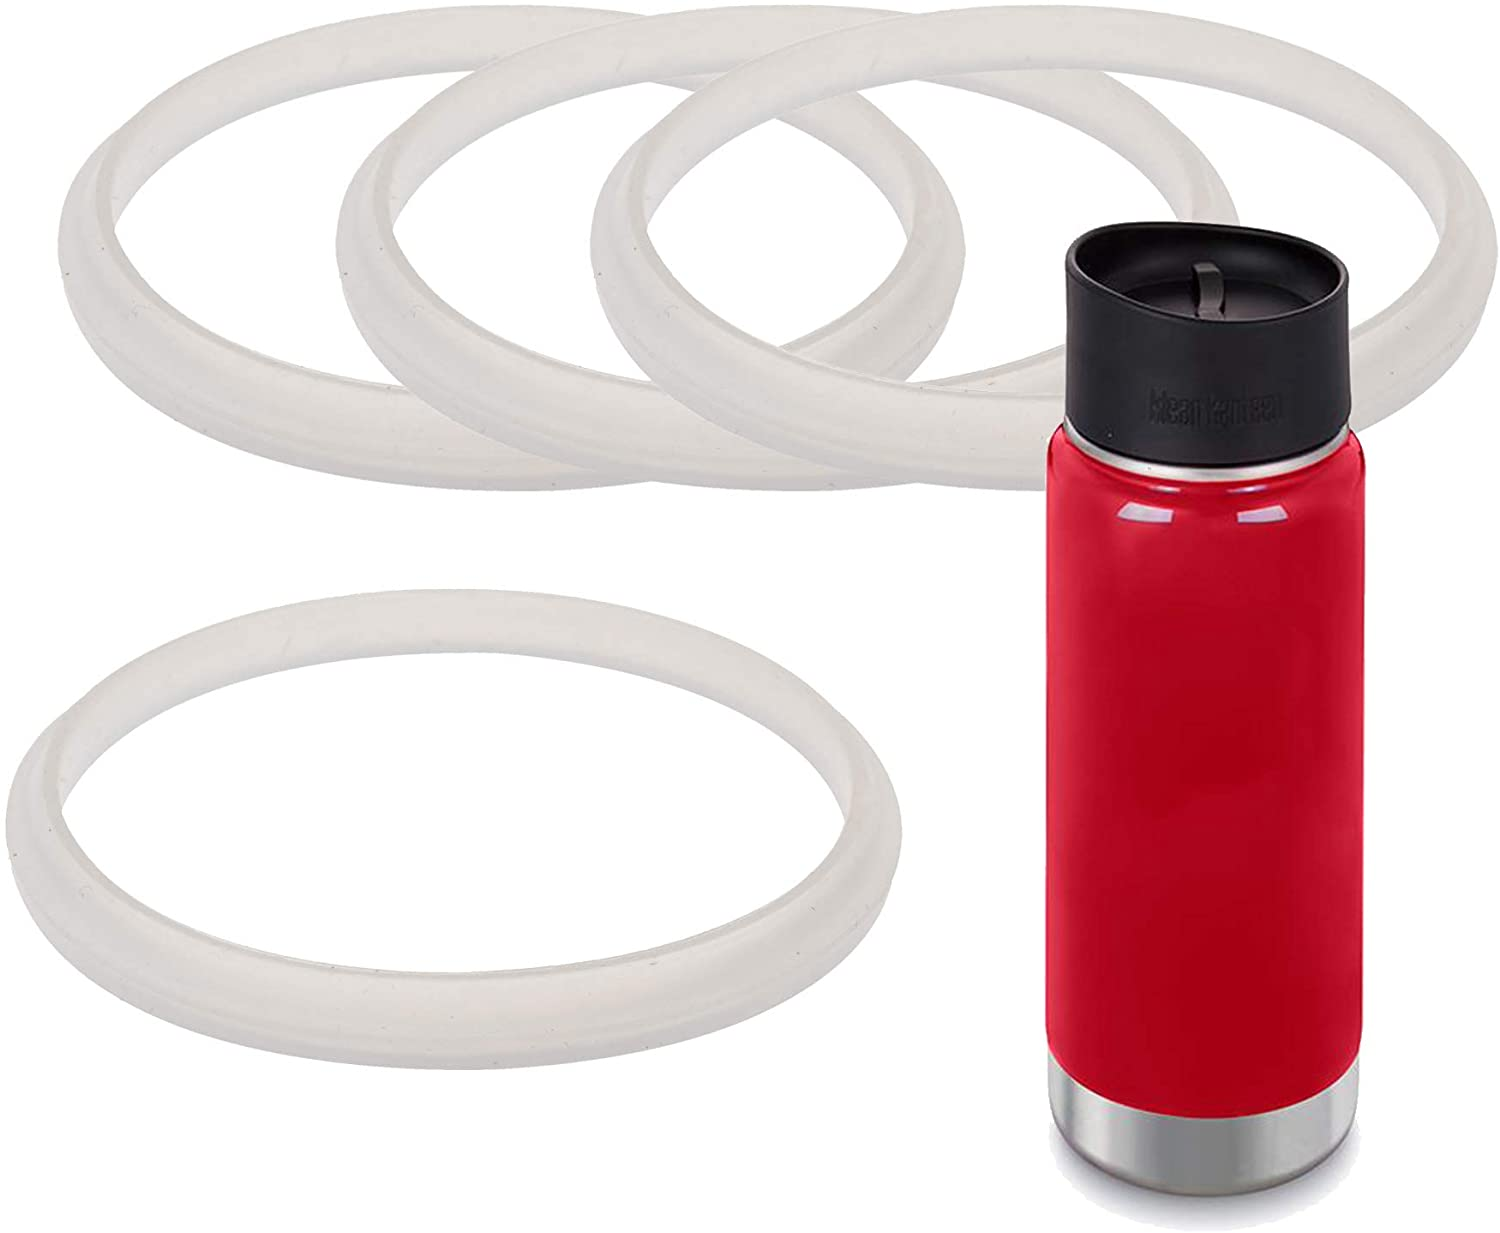 4-Pack of Klean Kanteen (TM)-Compatible Café Cap and Wide Cap Gaskets/O-Rings/Seals by Impresa Products - BPA-/Phthalate-/Latex-Free - Maintenance Kit